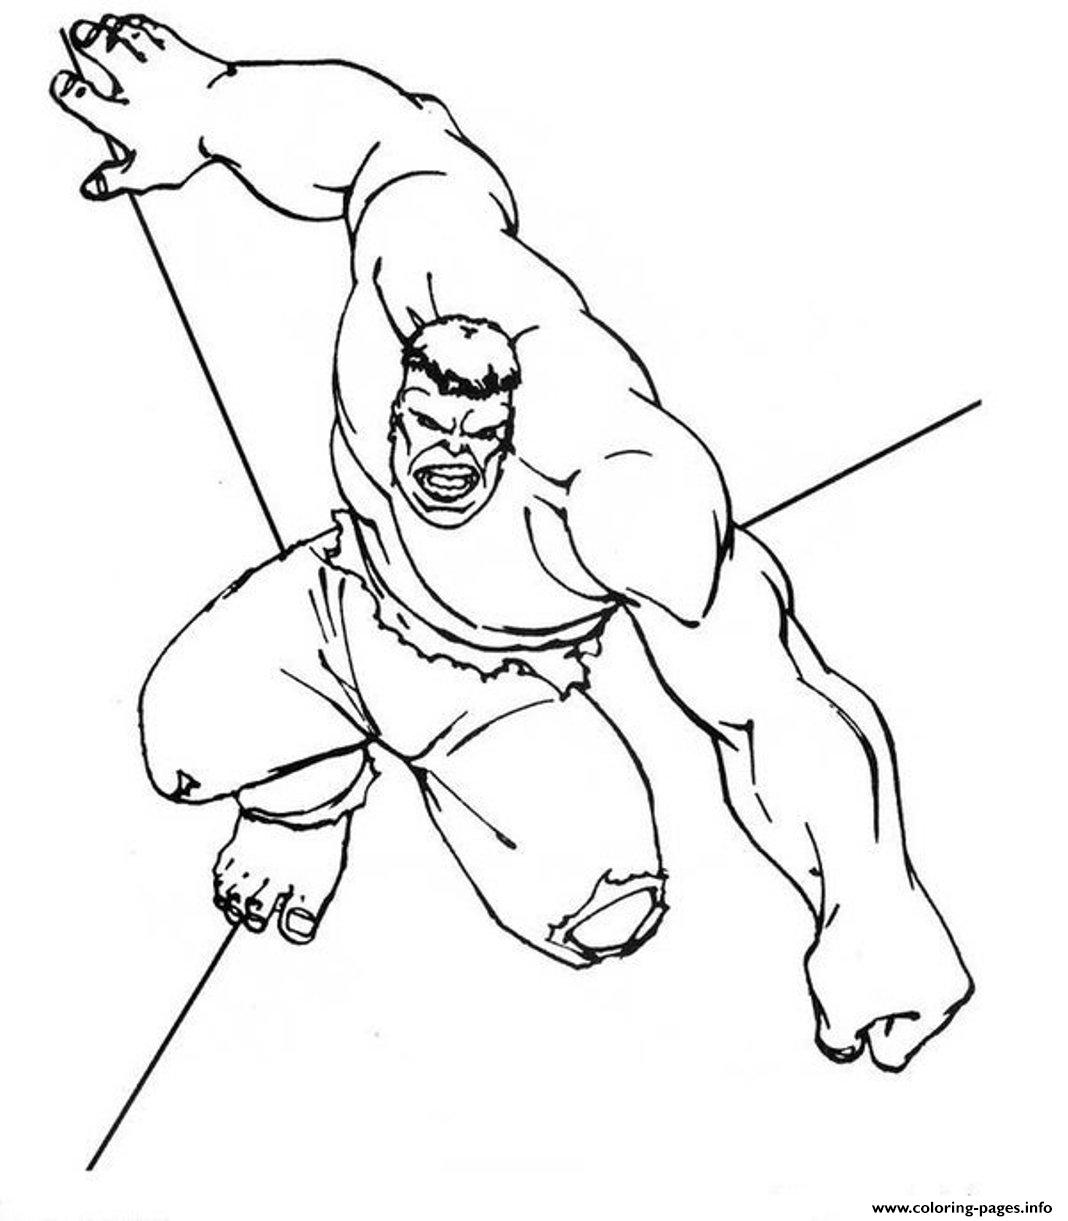 The Strong Man Hulk S3331 Coloring Pages